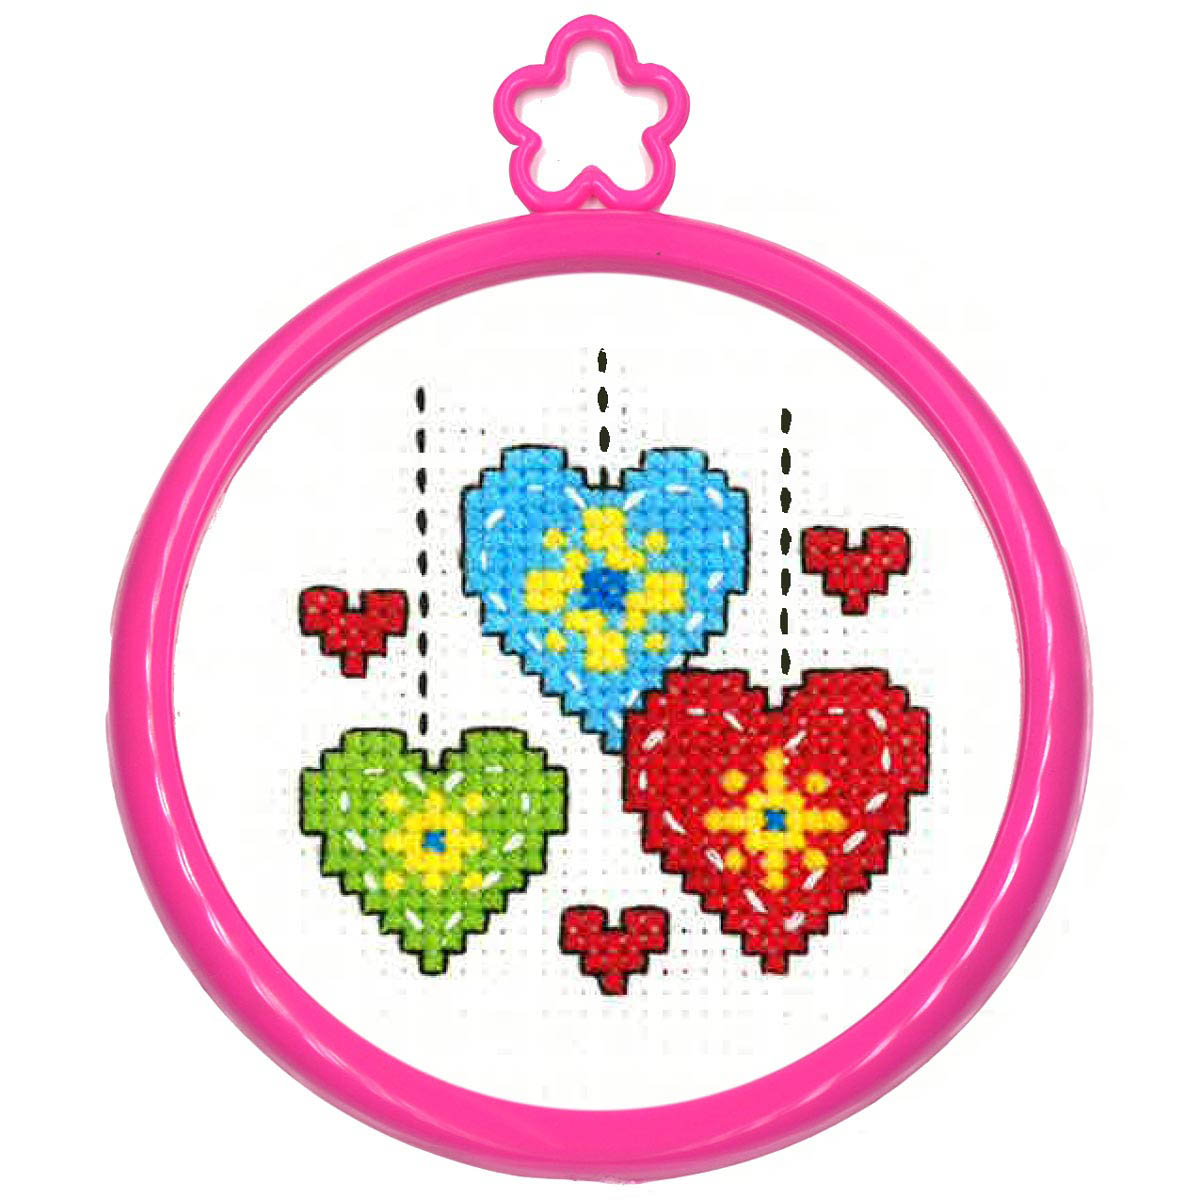 Bucilla ® My 1st Stitch™ - Counted Cross Stitch Kits - Mini - Hearts